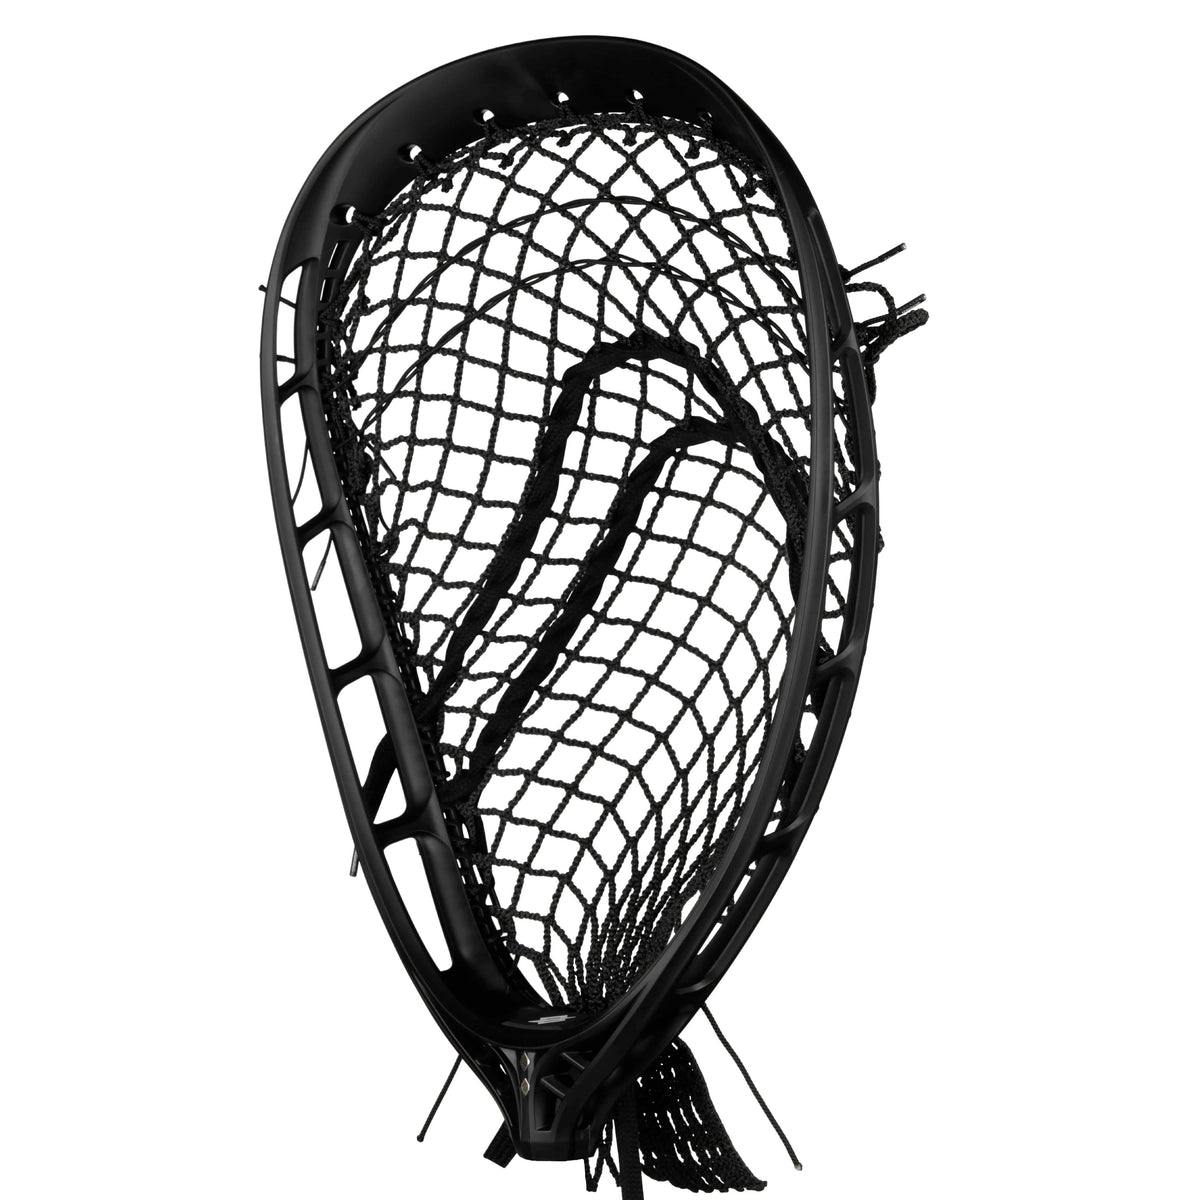 StringKing Mark 2G Goalie Factory Strung Grizzly 2s Lacrosse Head